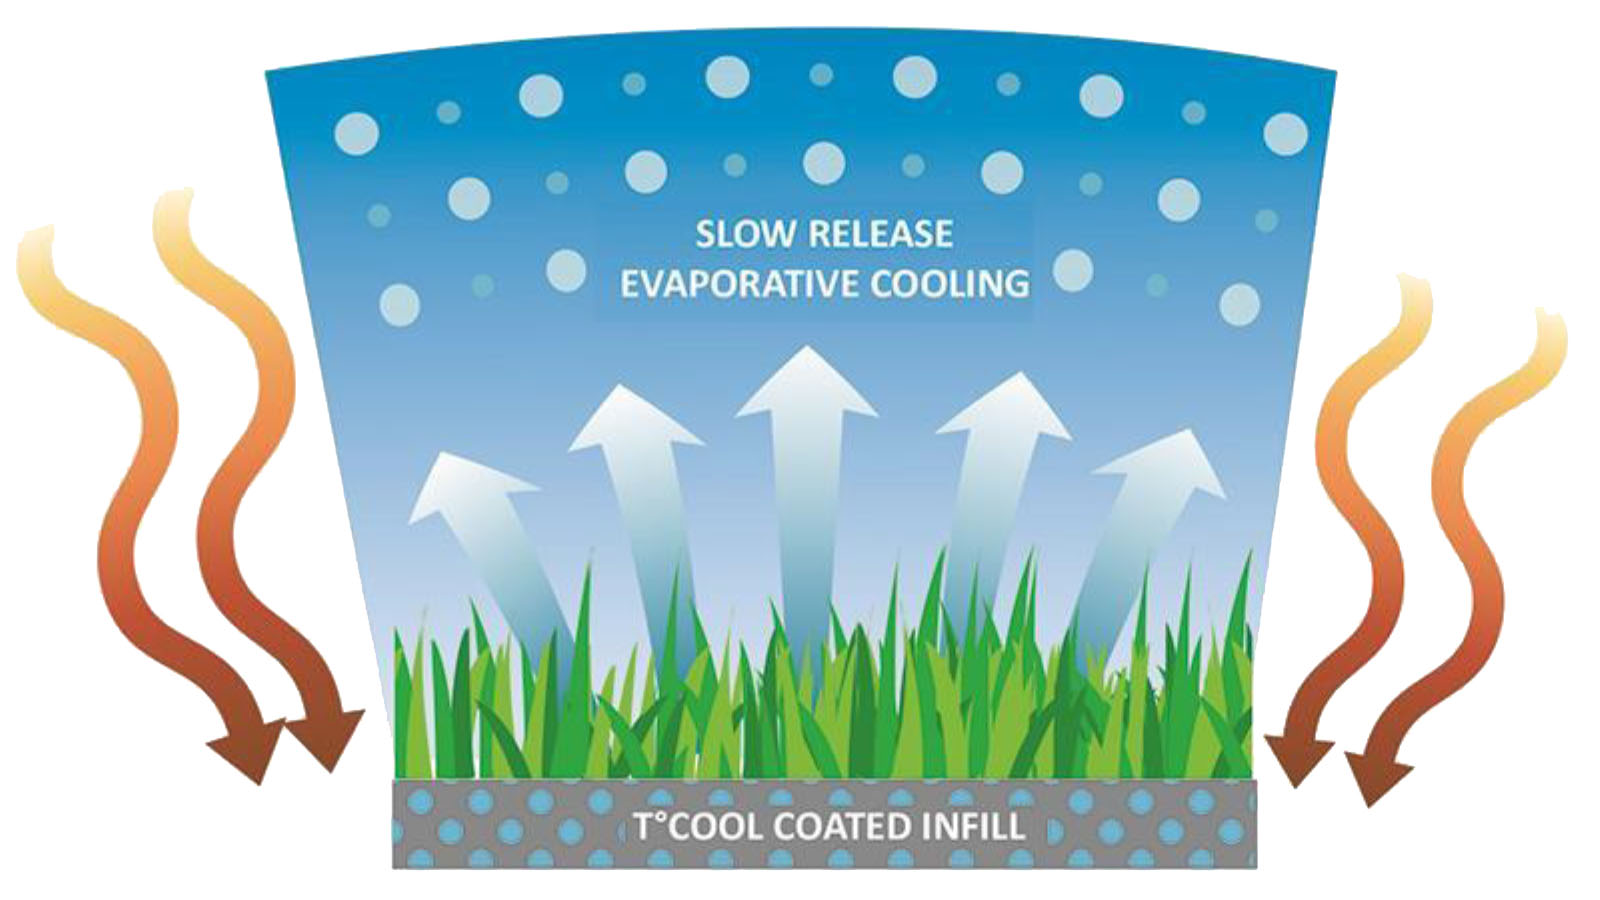 TCool Artificial Grass Synthetic Turf Cooling Technology Bades on Evaporative Cooling - Infill